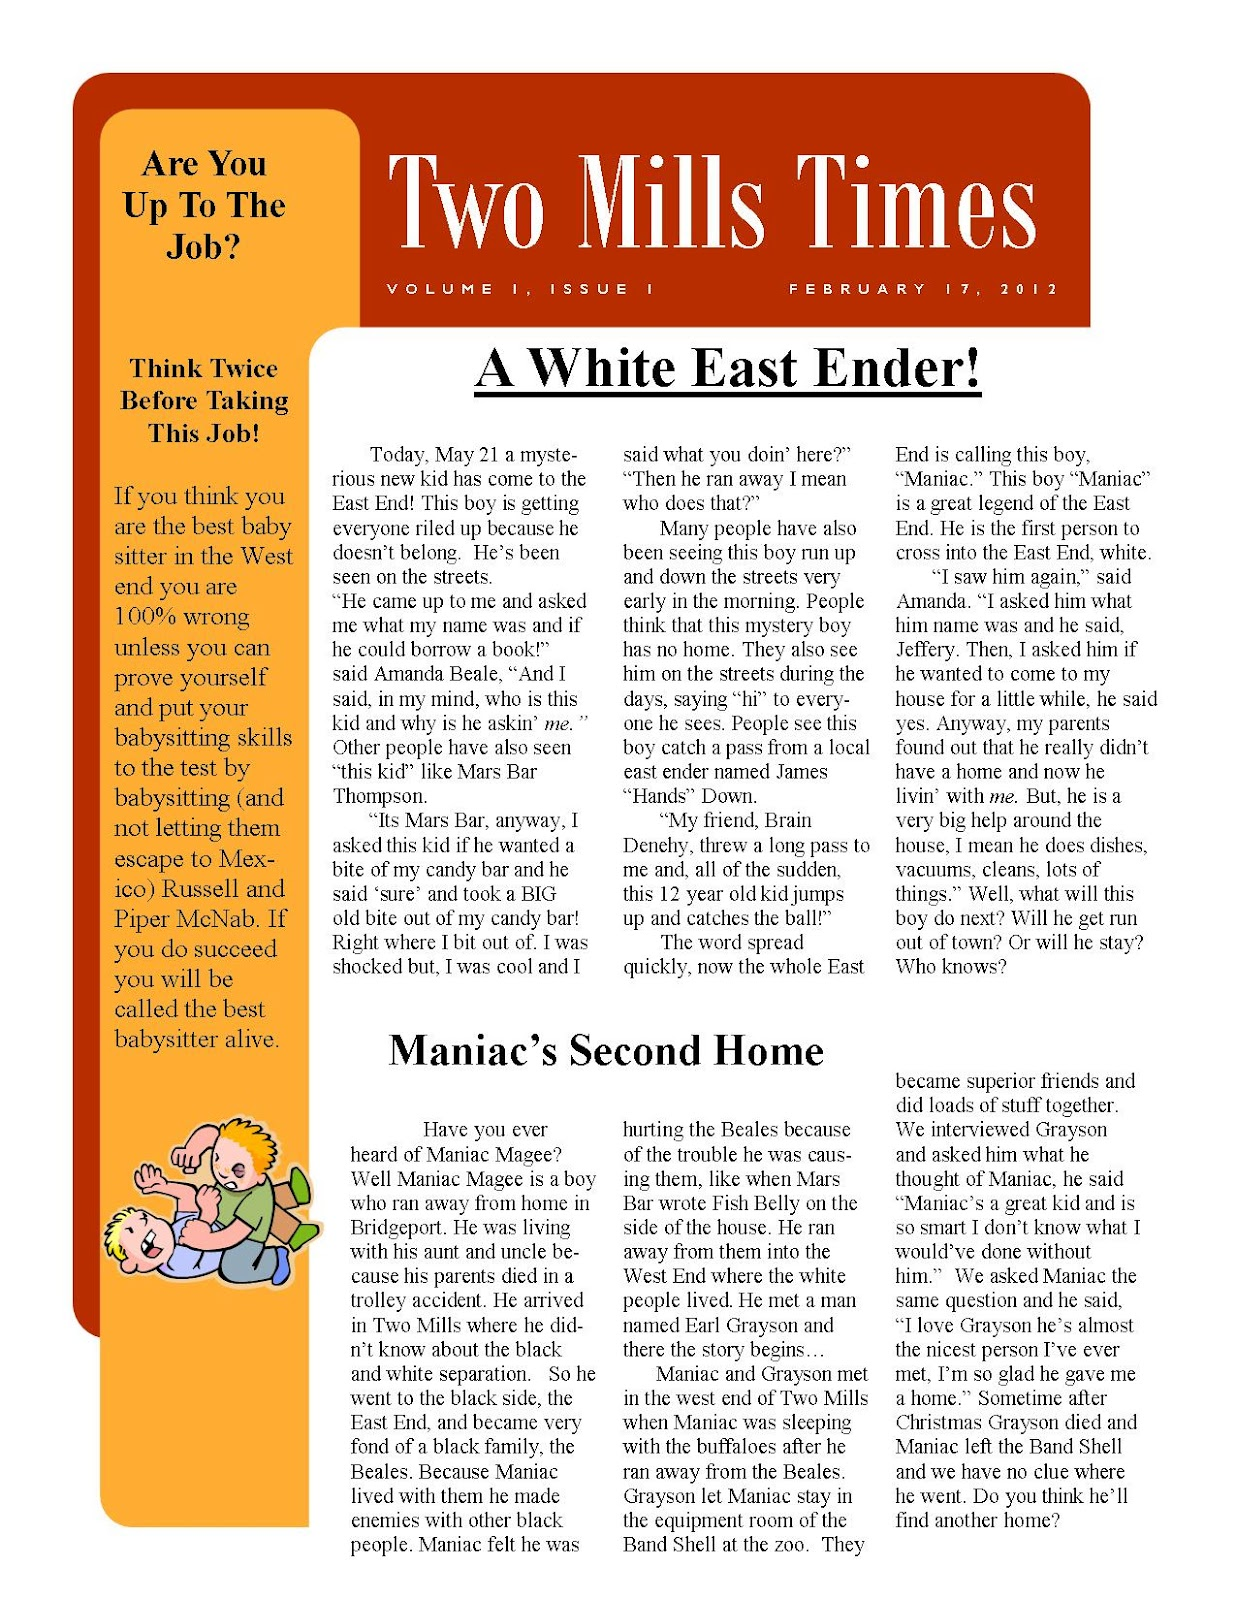 maniac magee essay candy bar maniac magee project more